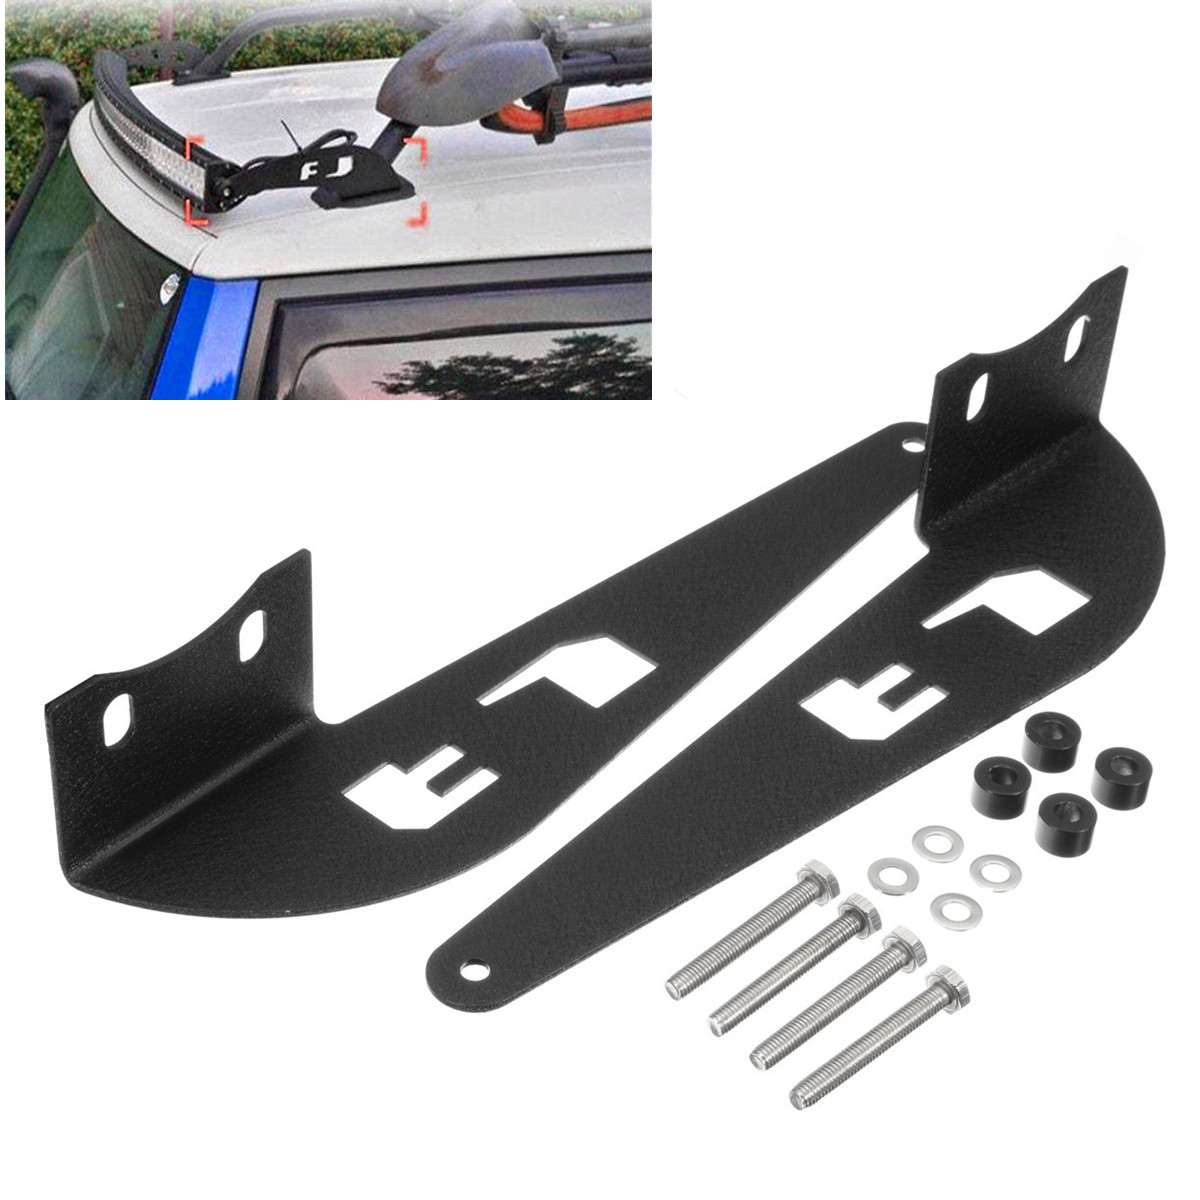 "Matt Black Roof Brackets Light Bar Mount For Toyota For FJ Cruiser 52"" Curved LED Light Bar Mounting Brackets 07-14"